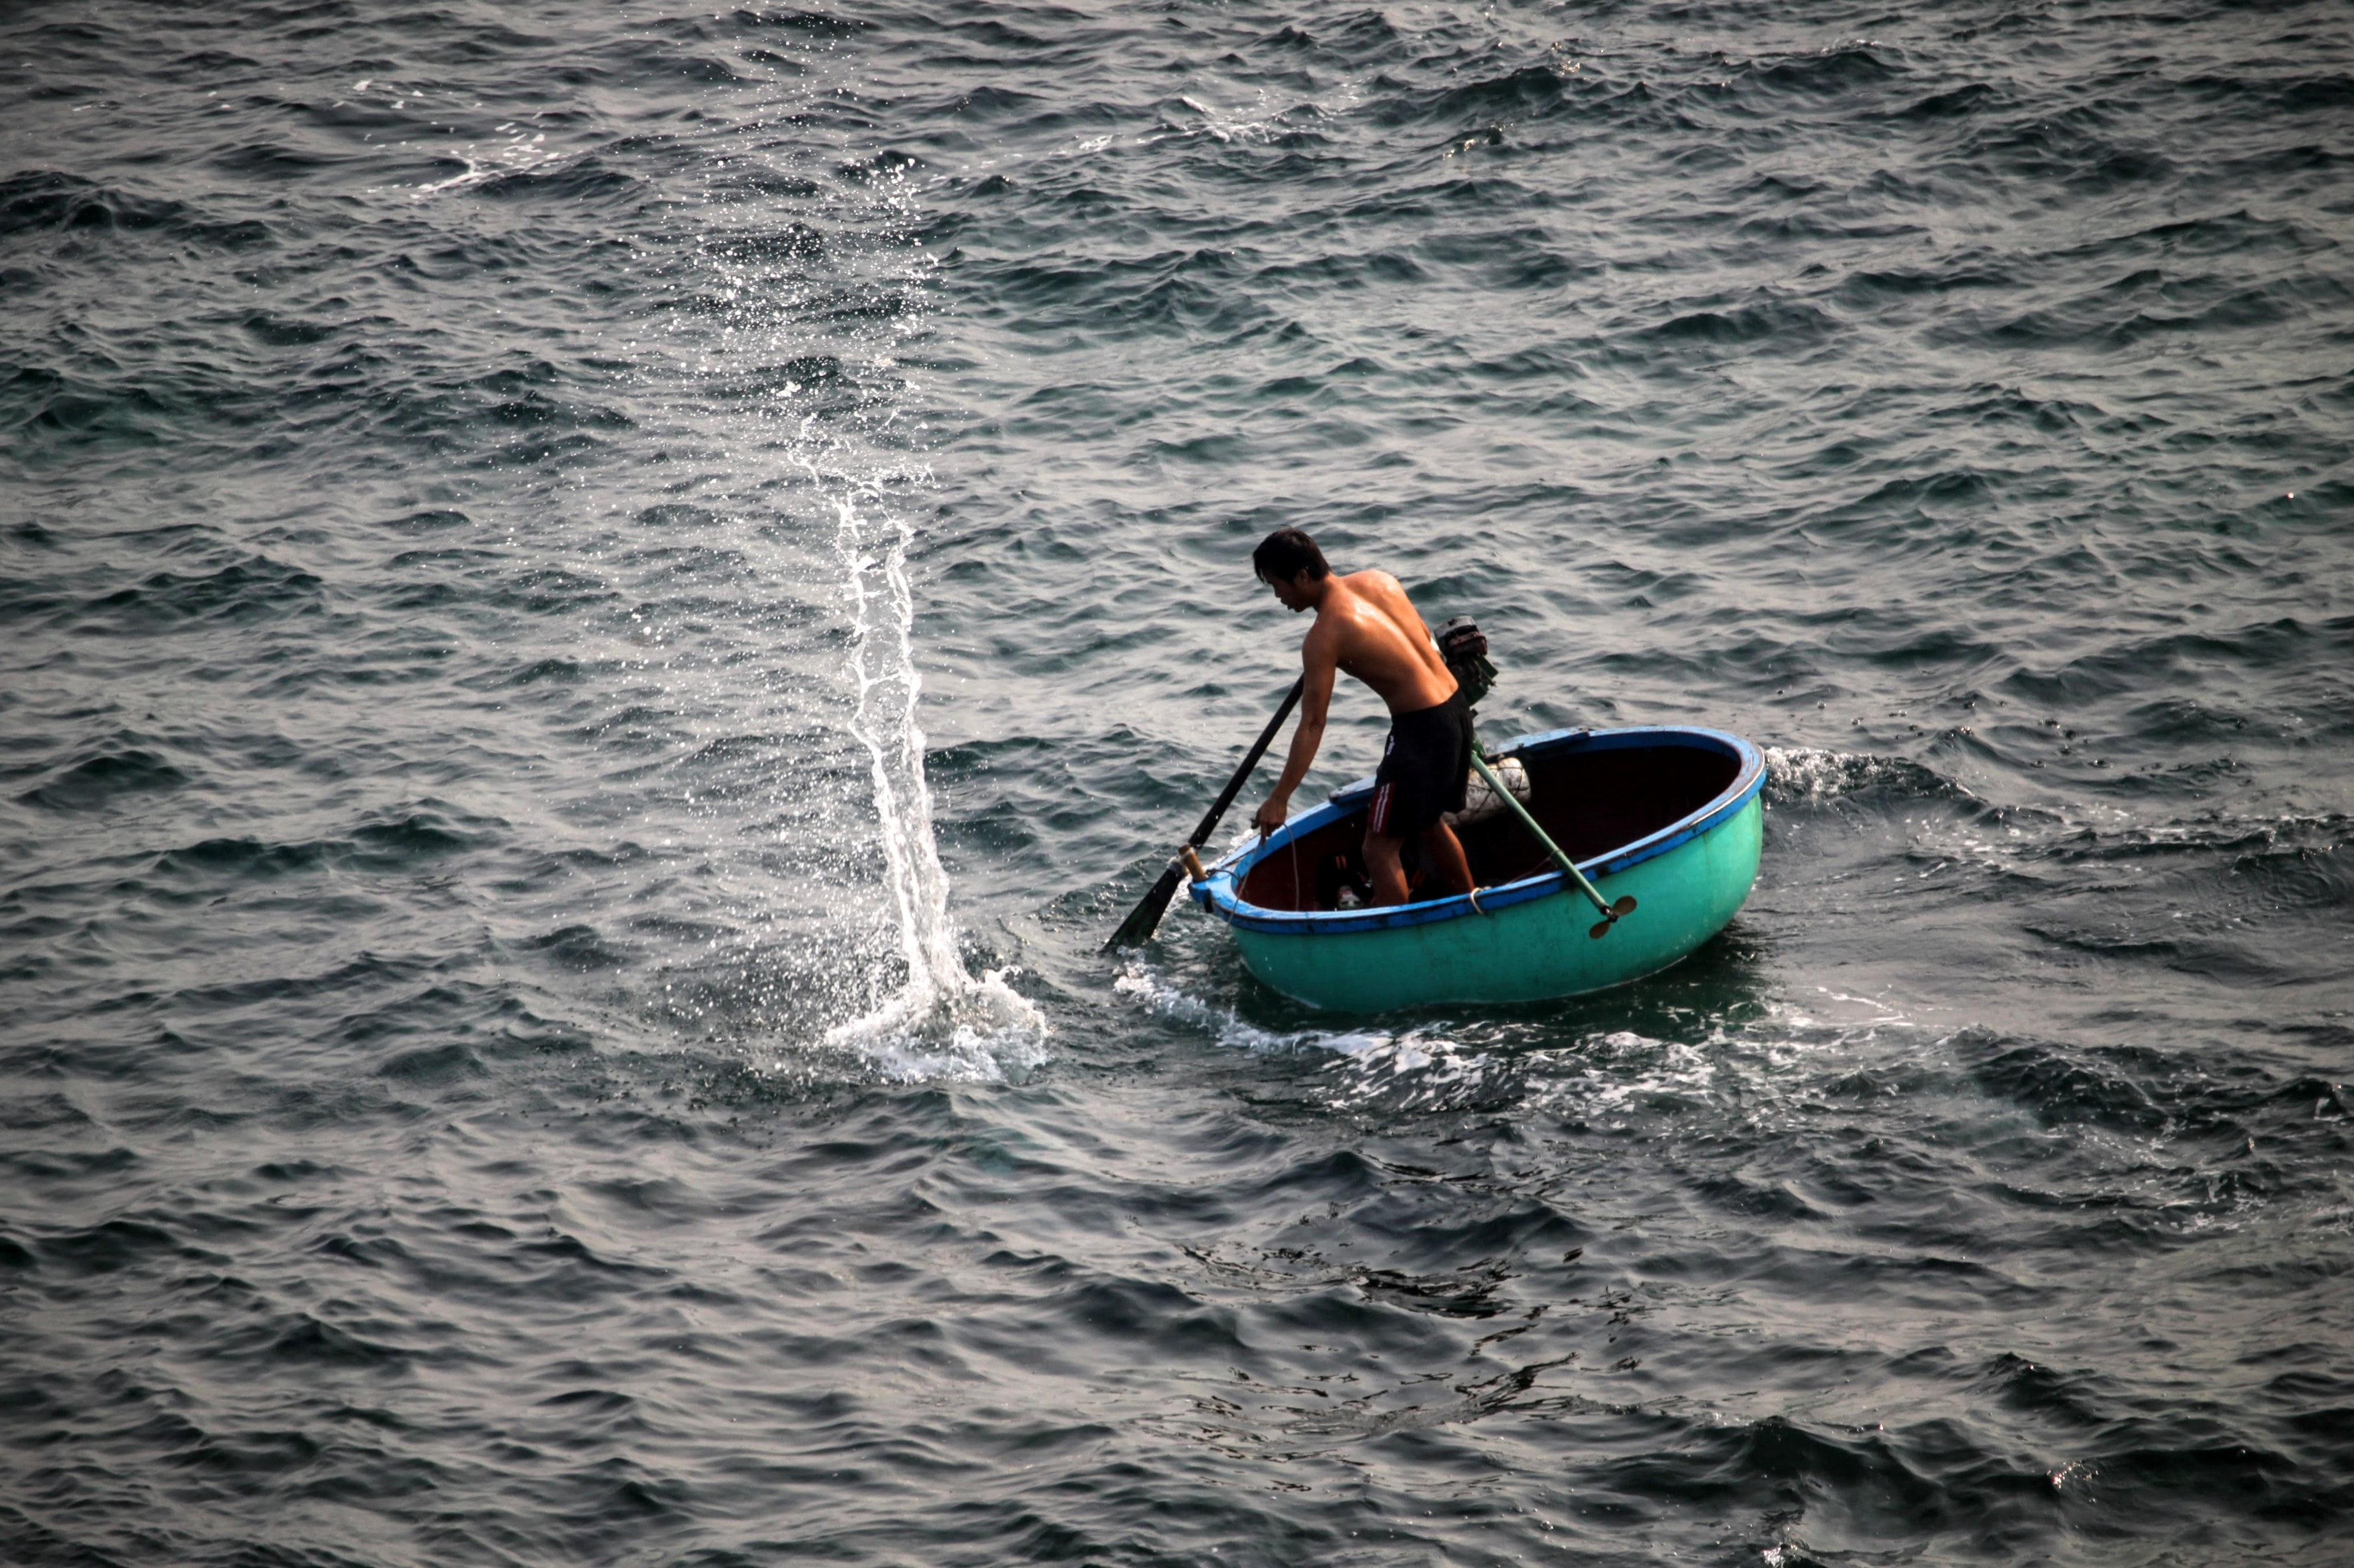 A fisherman paddling a turquoise boat in Quảng Ngãi